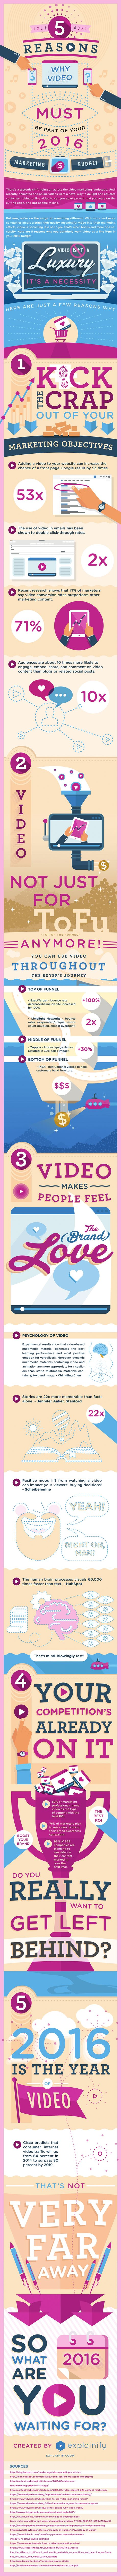 5 Reasons Why Video Must Be Part of Your 2016 Marketing Budget [Infographic]